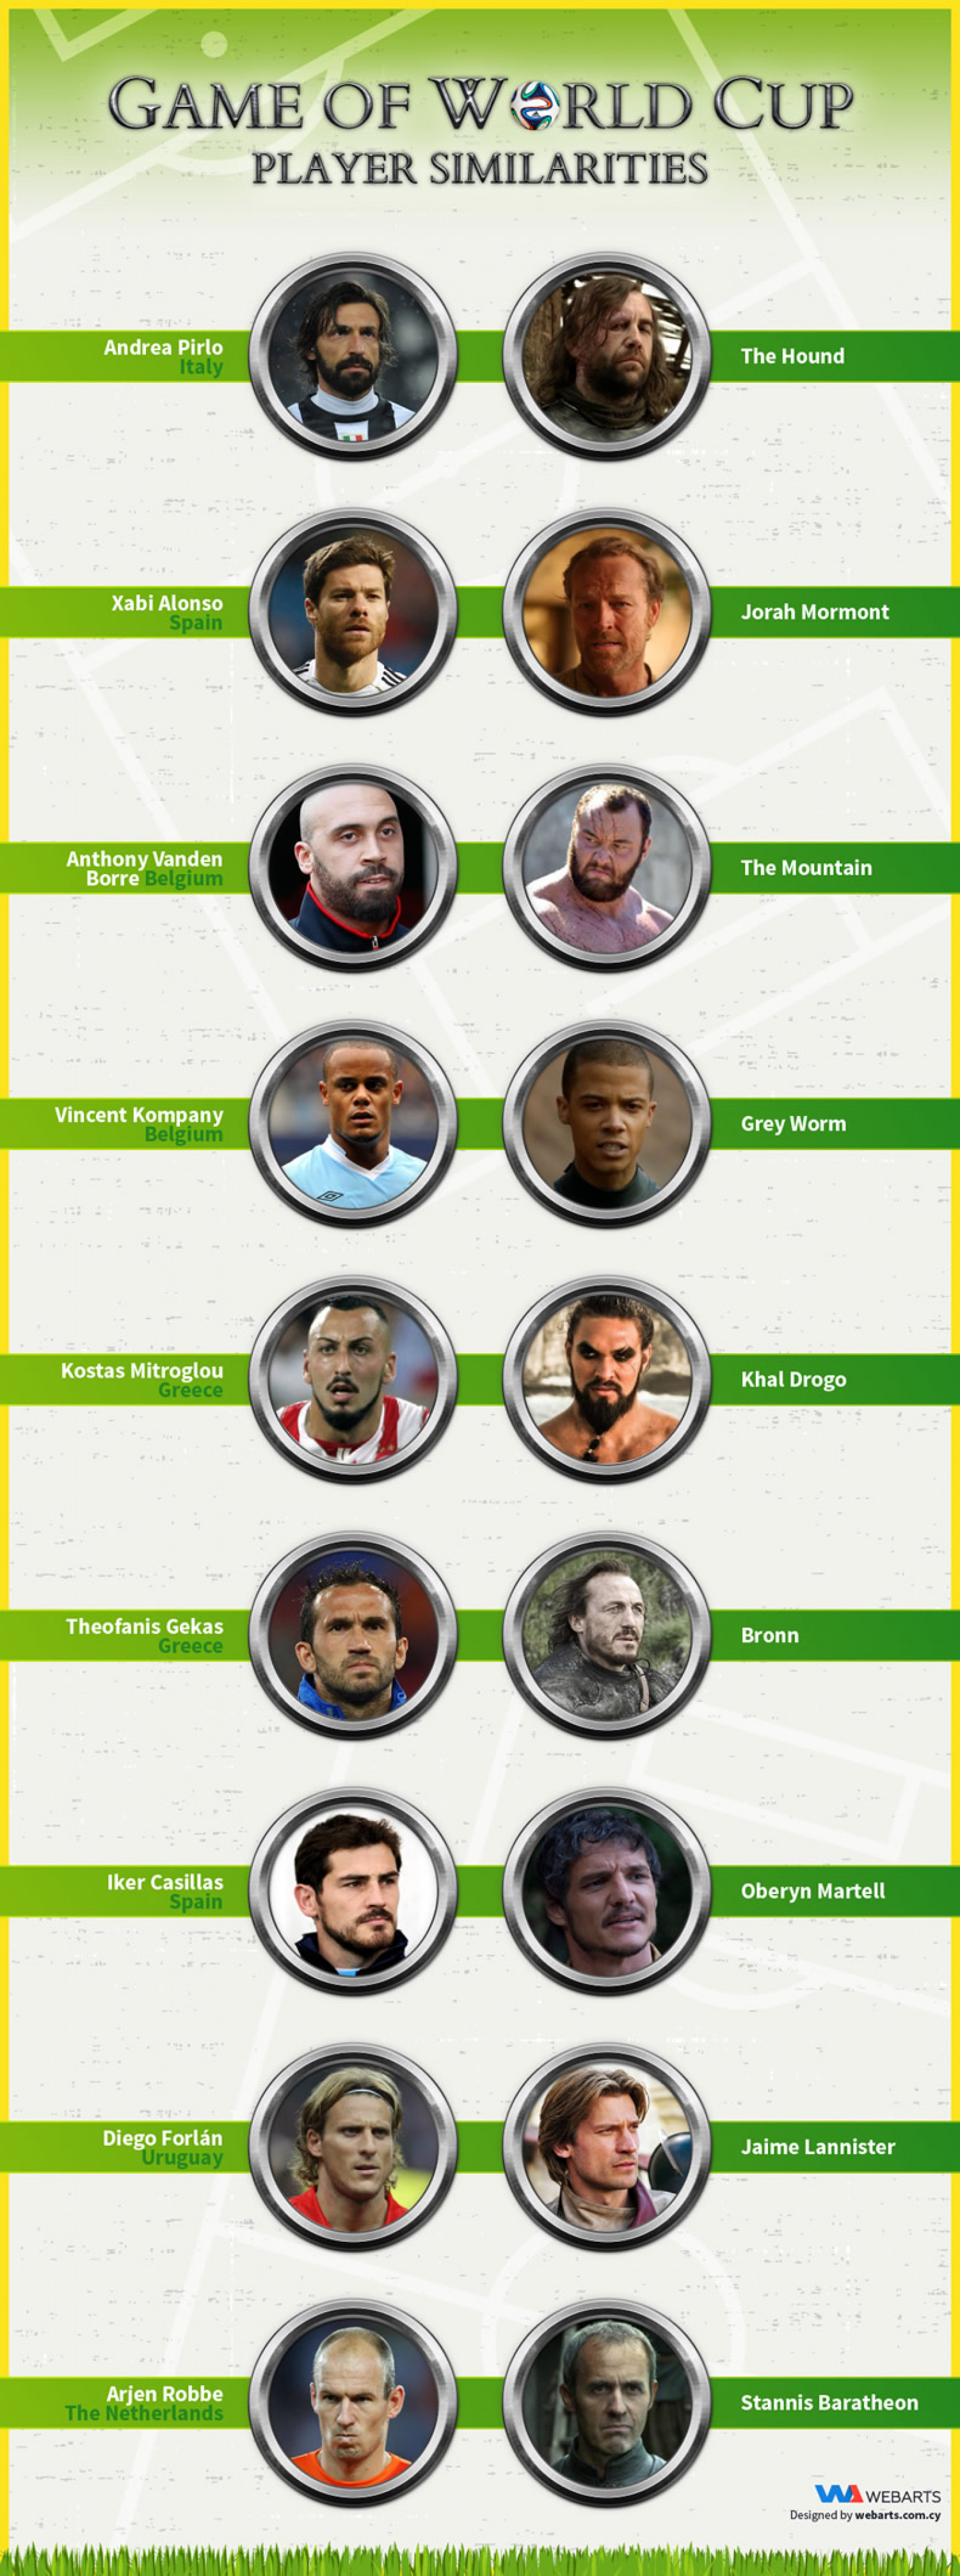 Game of World Cup: Player Similarities Infographic